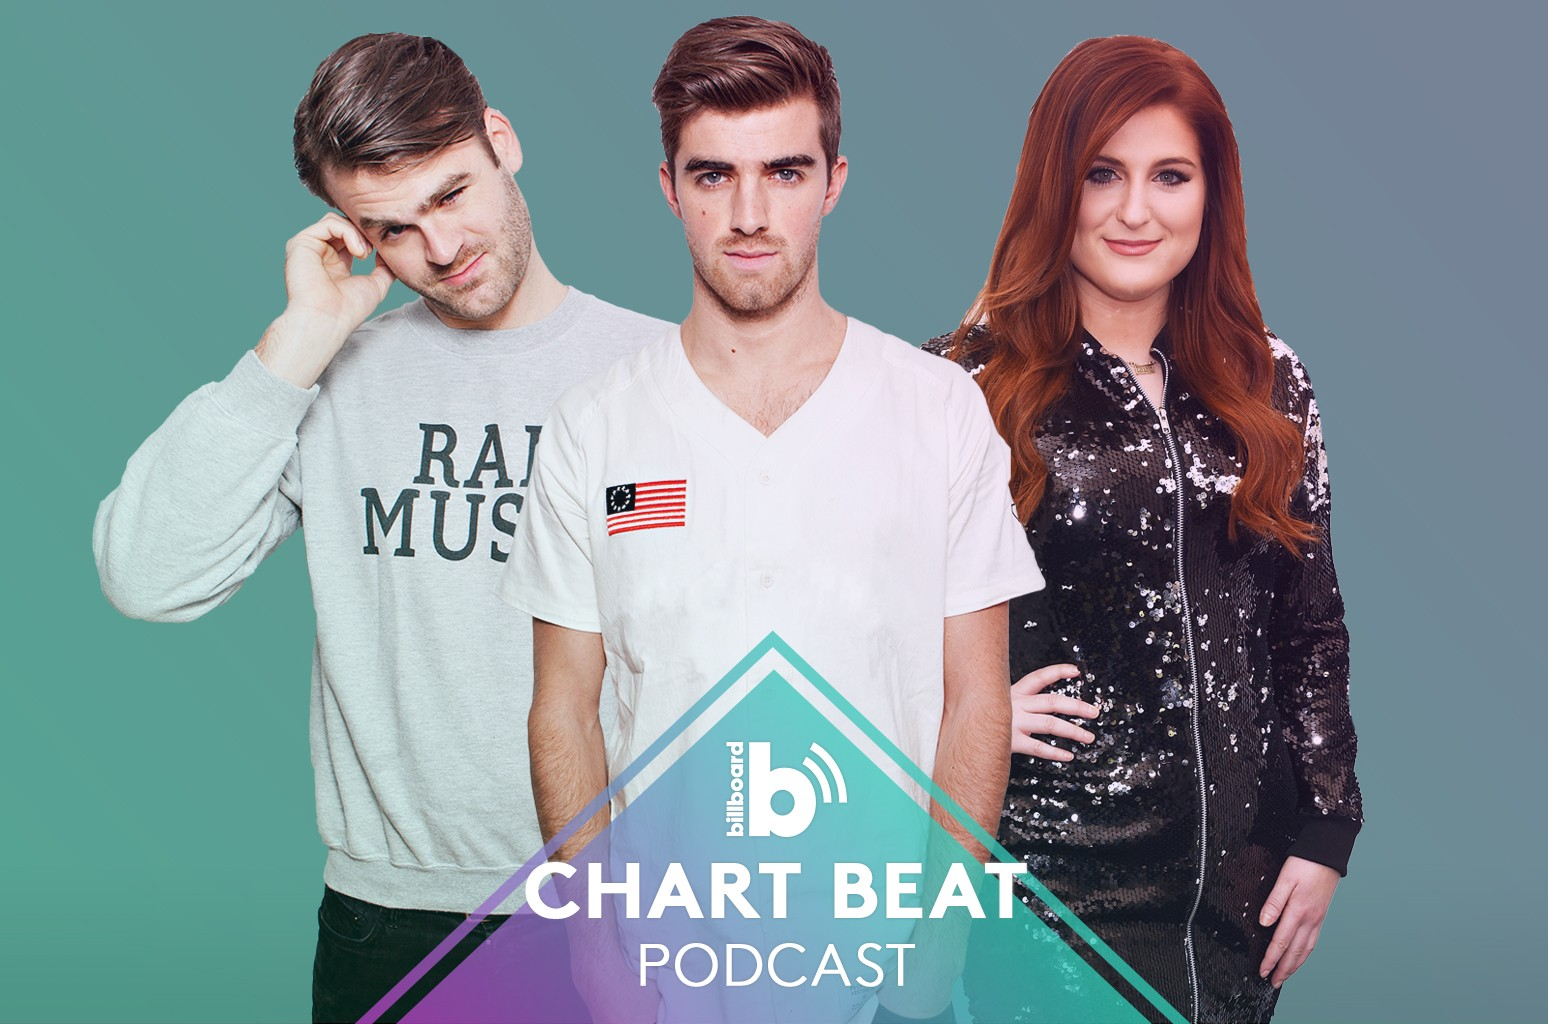 Chart Beat Podcast: Chainsmokers and Meghan Trainor